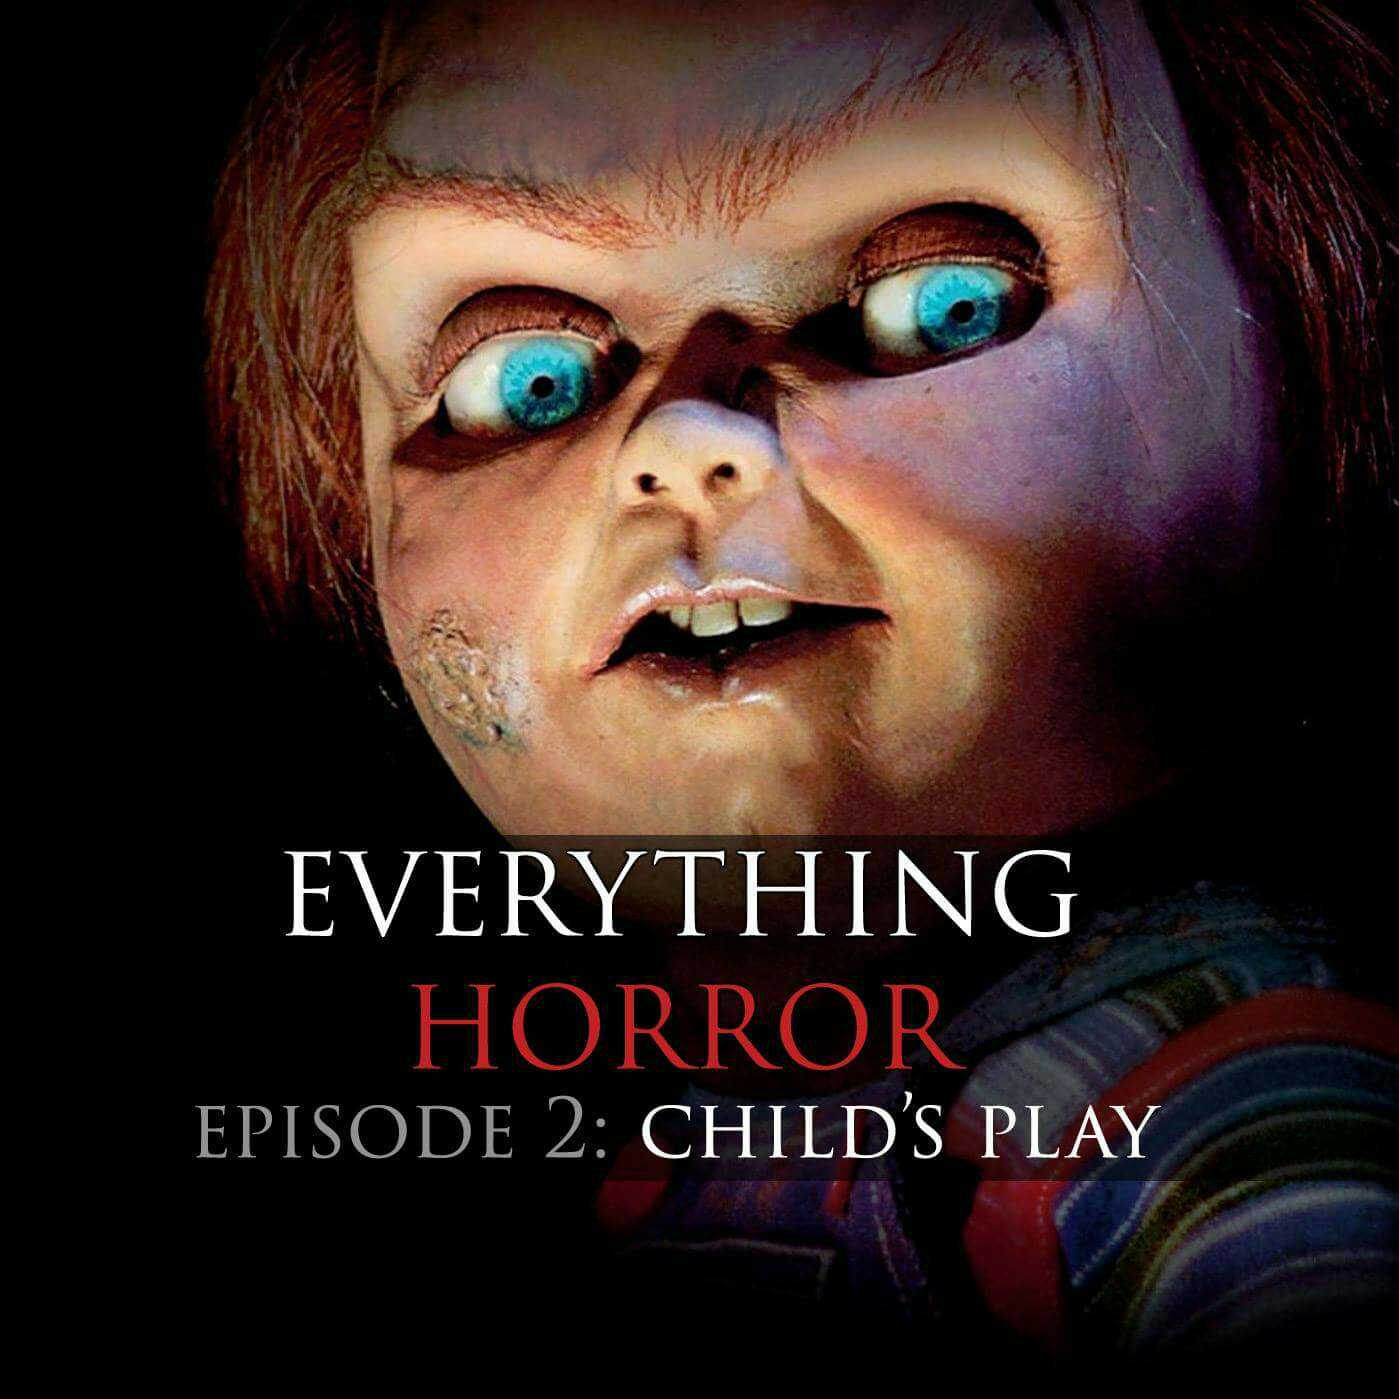 S1: Episode 2: Child's Play